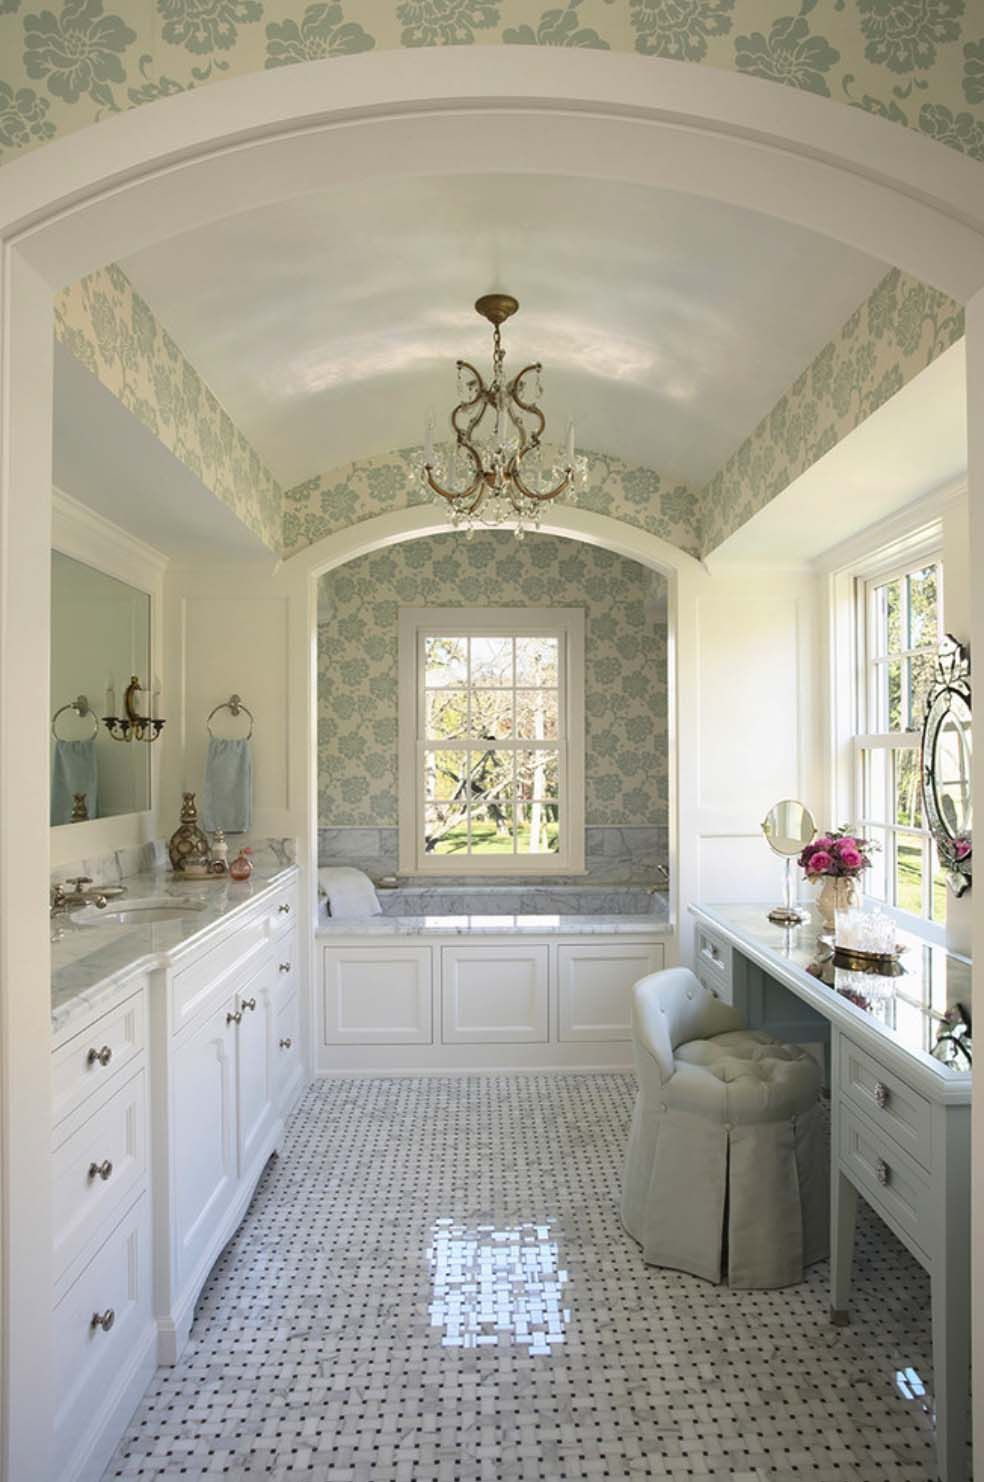 53 most fabulous traditional style bathroom designs ever | bathroom